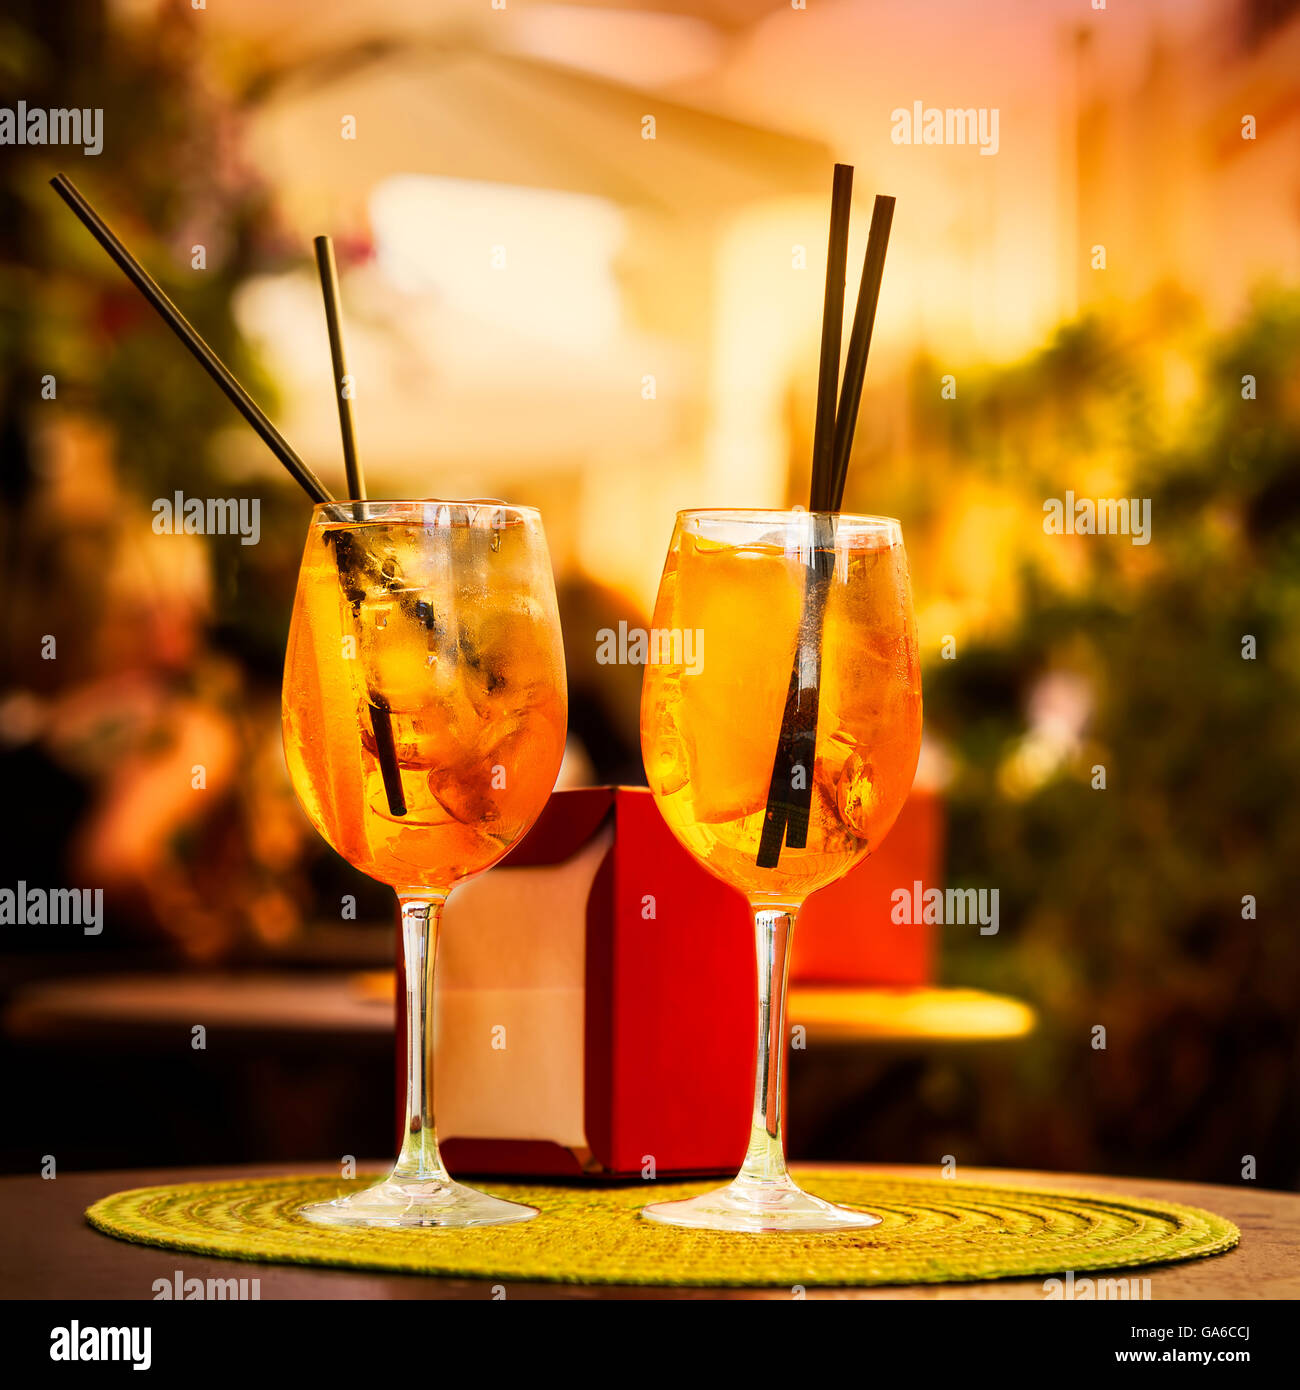 Aperol Spritz Cocktail. Alcoholic beverage based on table with ice cubes and oranges. - Stock Image